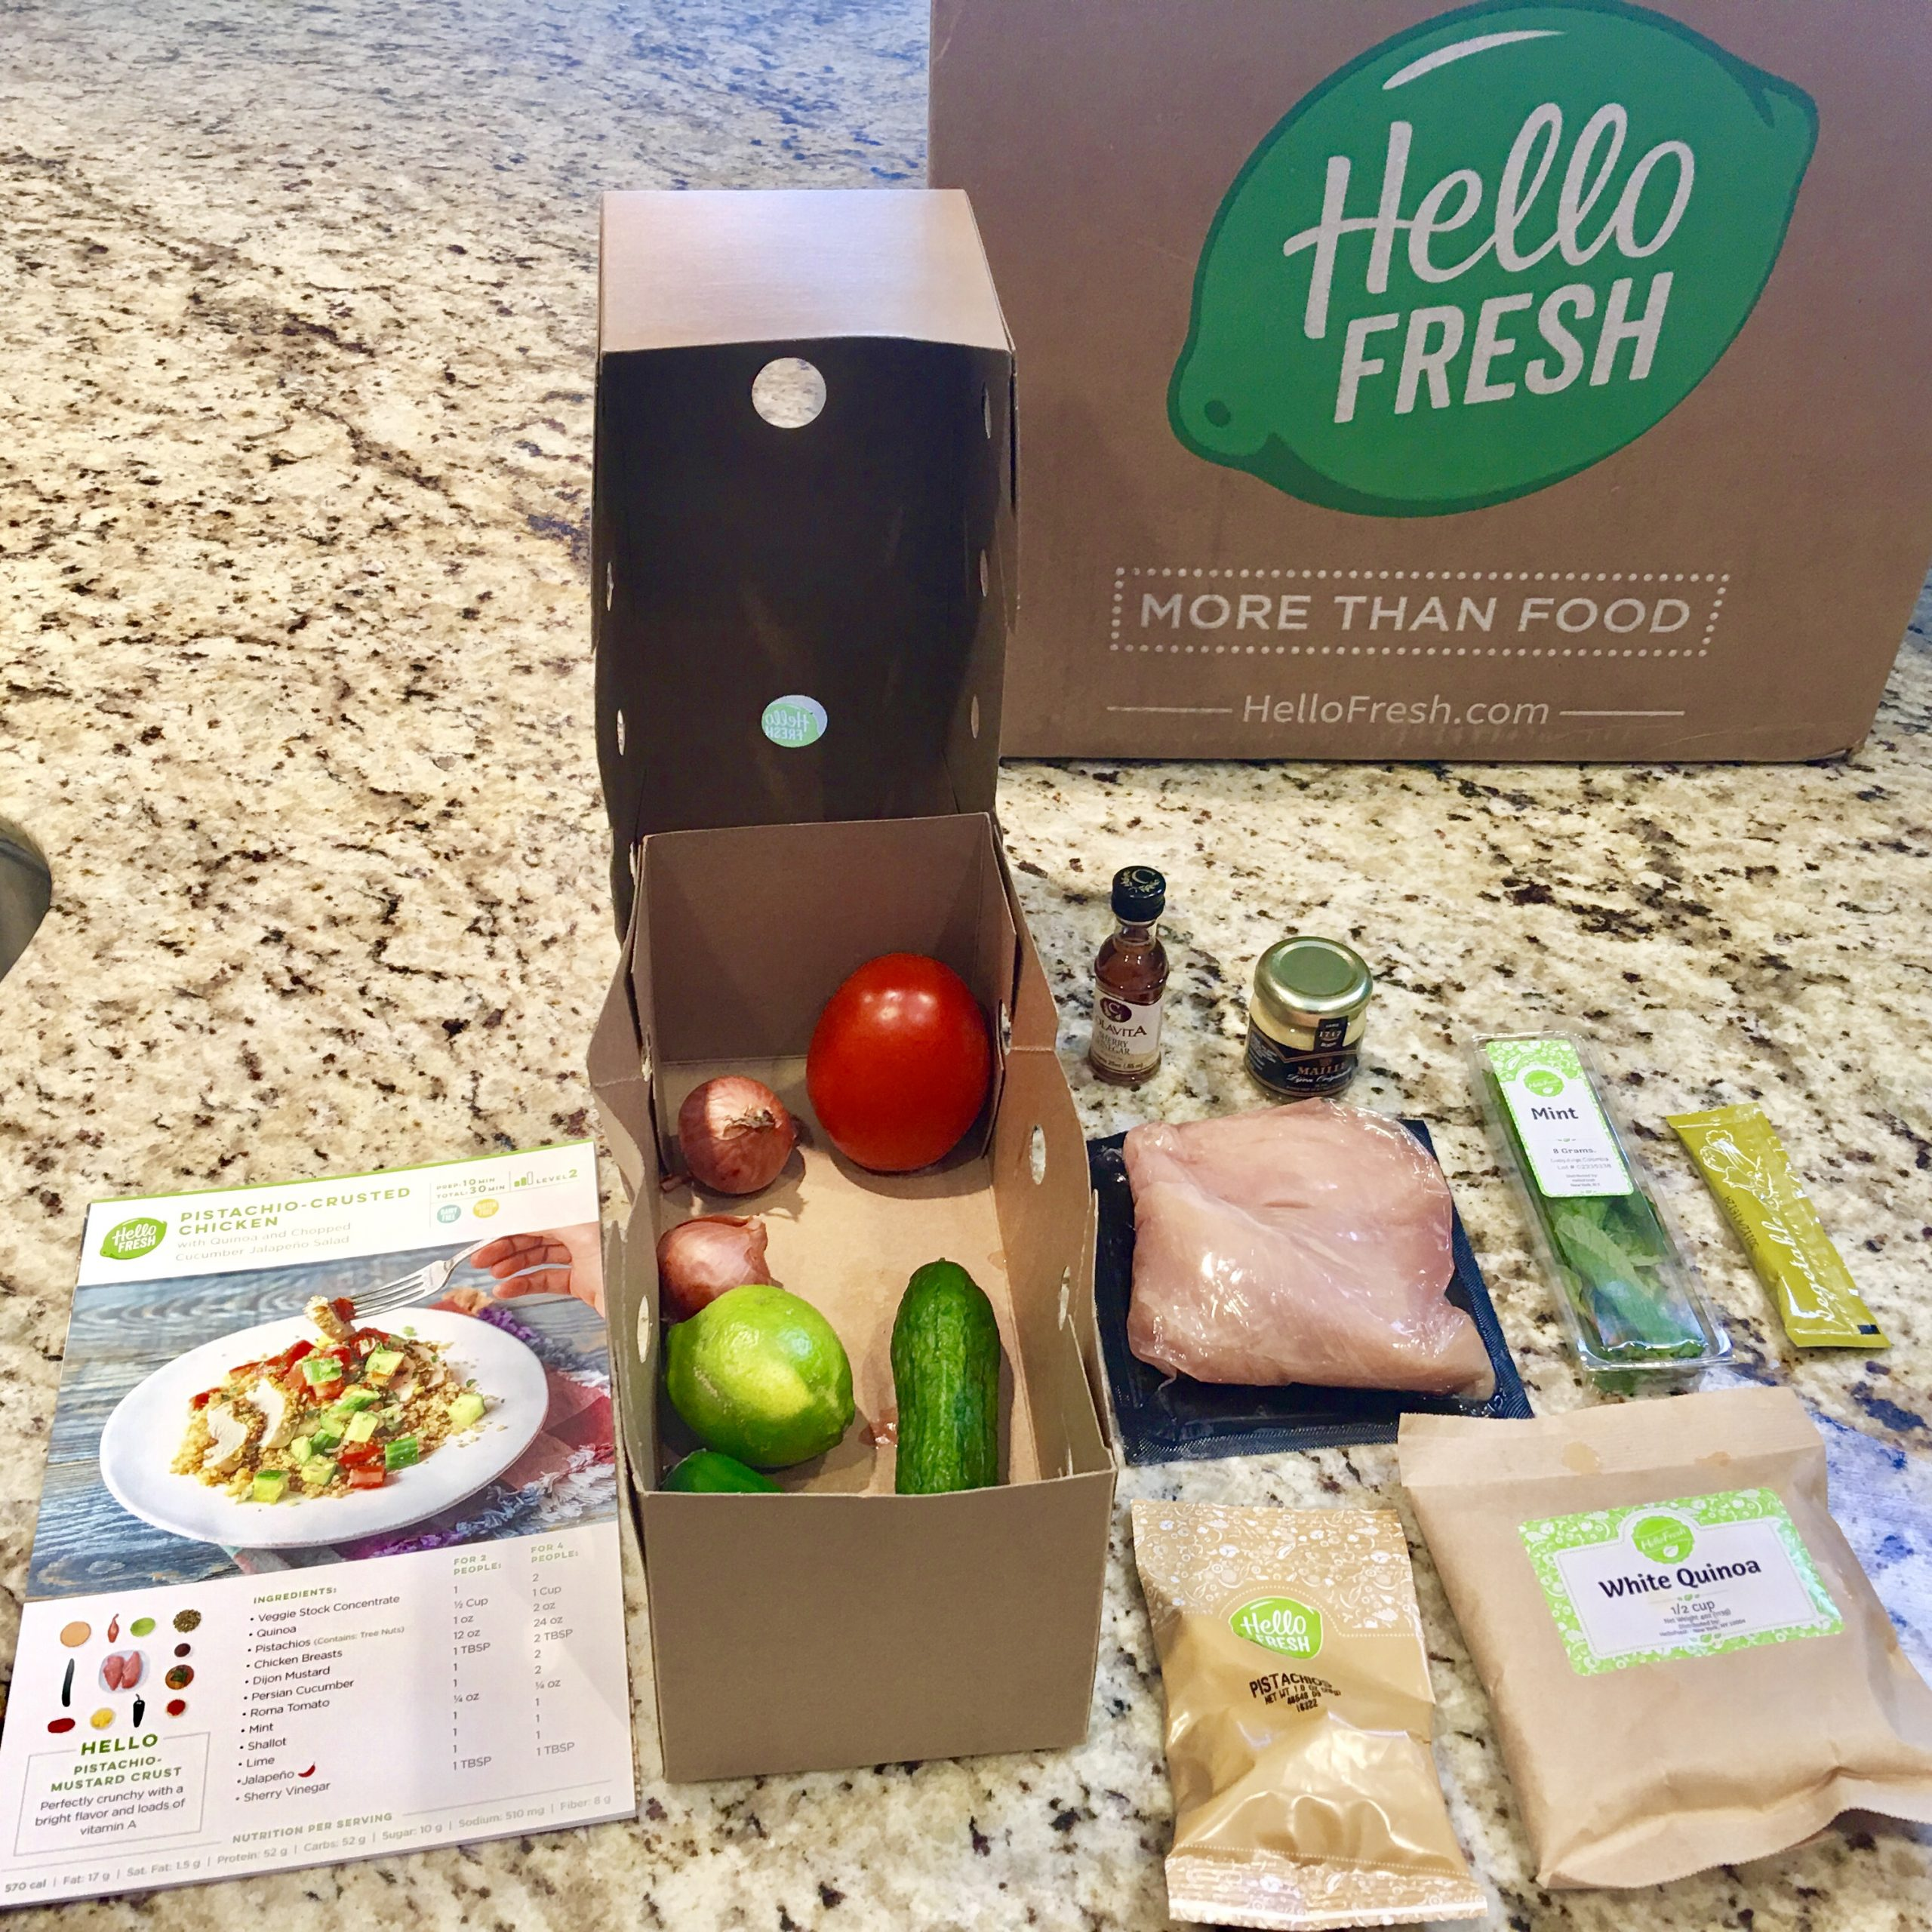 Price Brand New Hellofresh Meal Kit Delivery Service